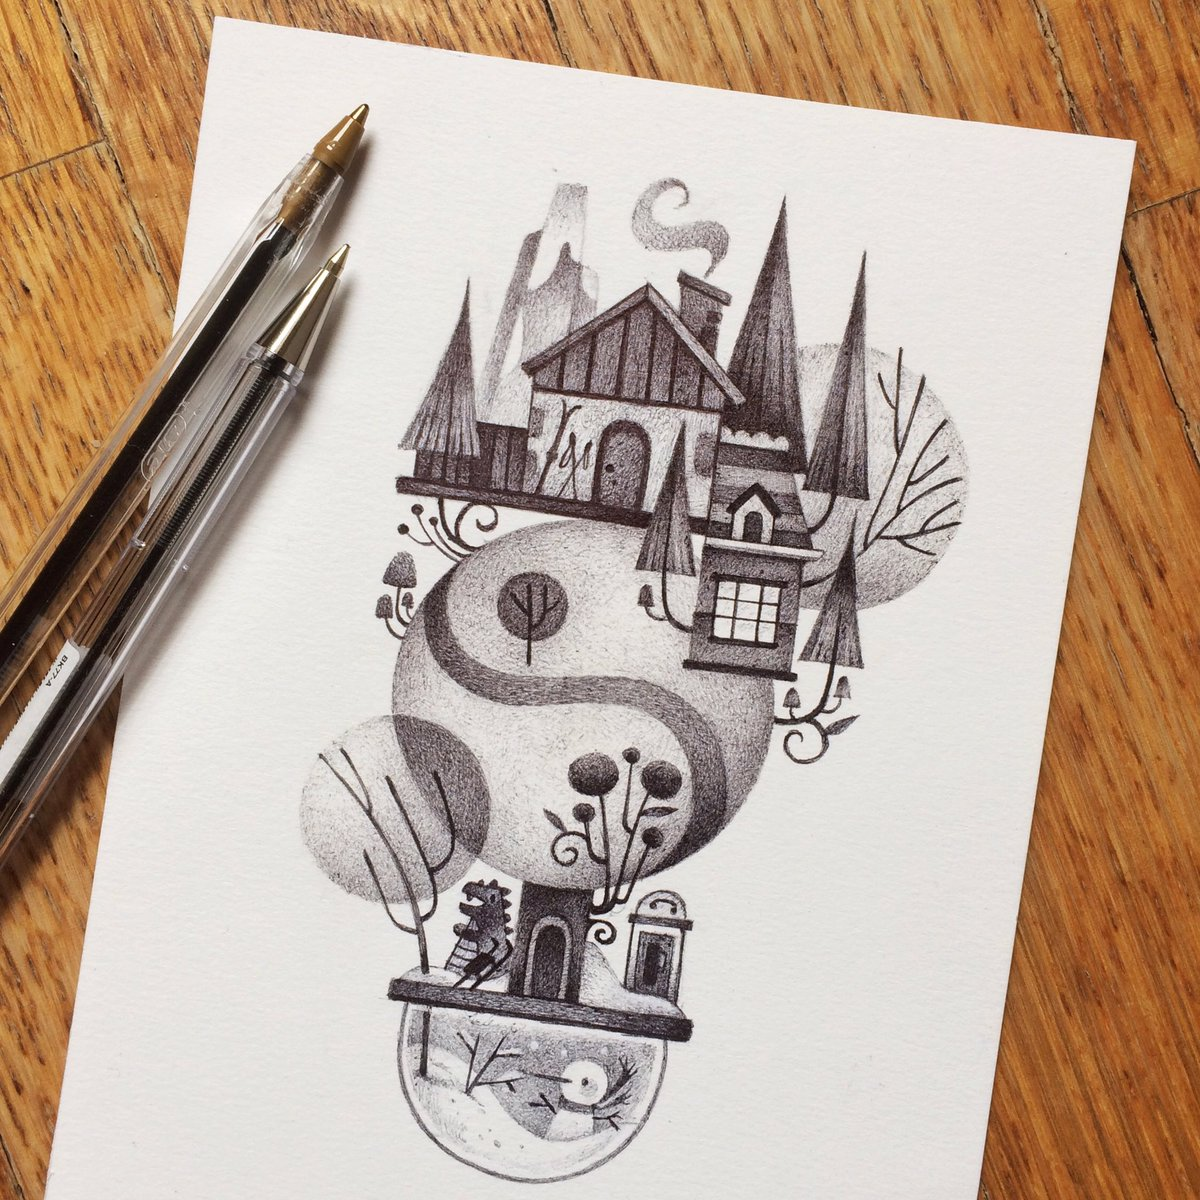 Nusquam - Tales from Imaginary Places #illustration #biro #ink #kidlit #kidlitart https://t.co/5Yy4DDRdcK